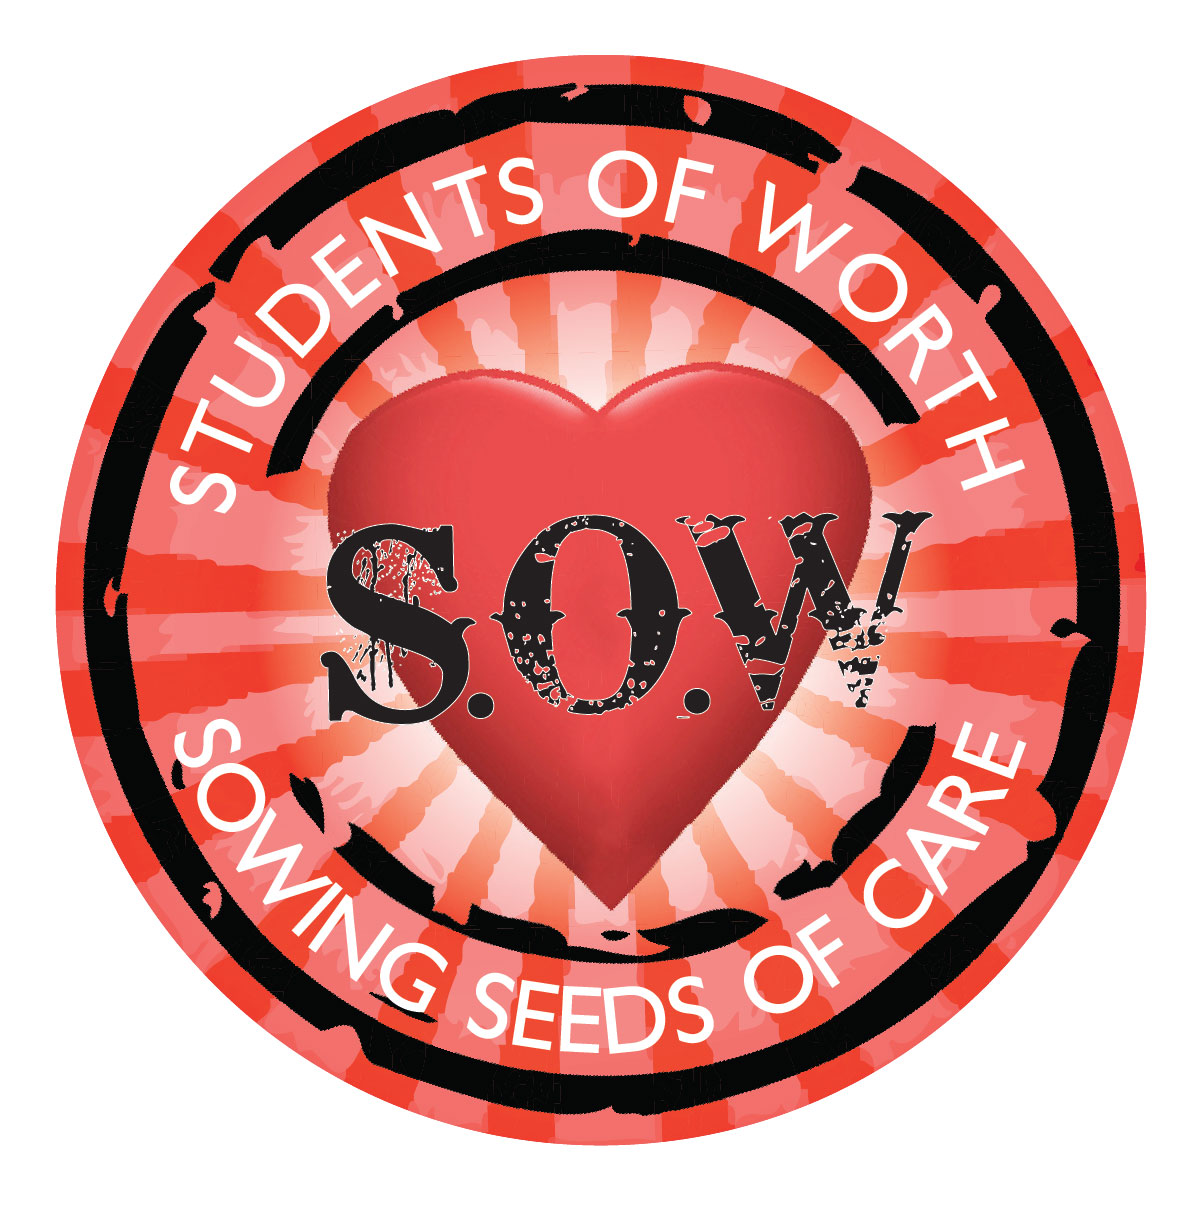 Students of worth sowing seeds of care